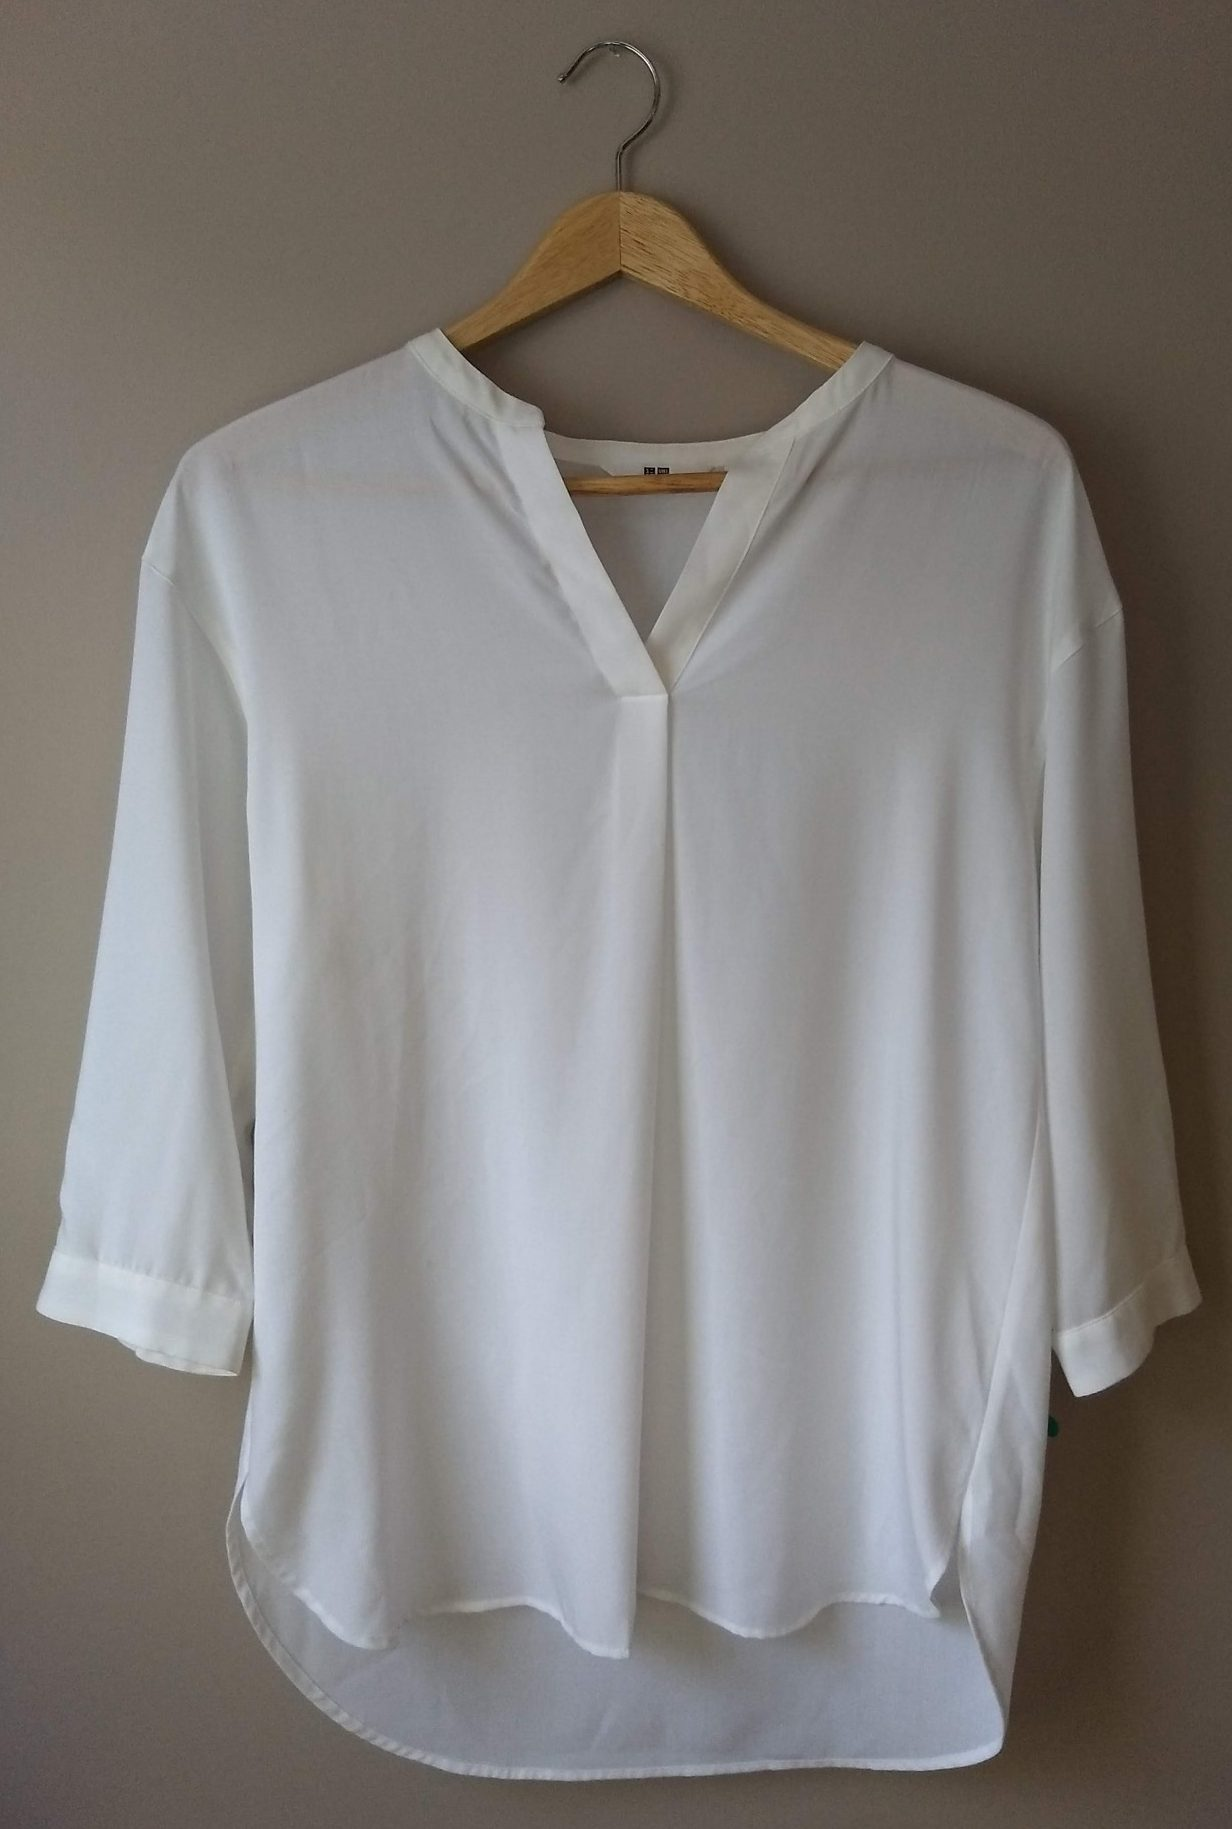 73cbf553651b But then I got home and opened my drawers and realized that I could have  created a very similar look using this long-sleeved white J. Jill tee from  my ...